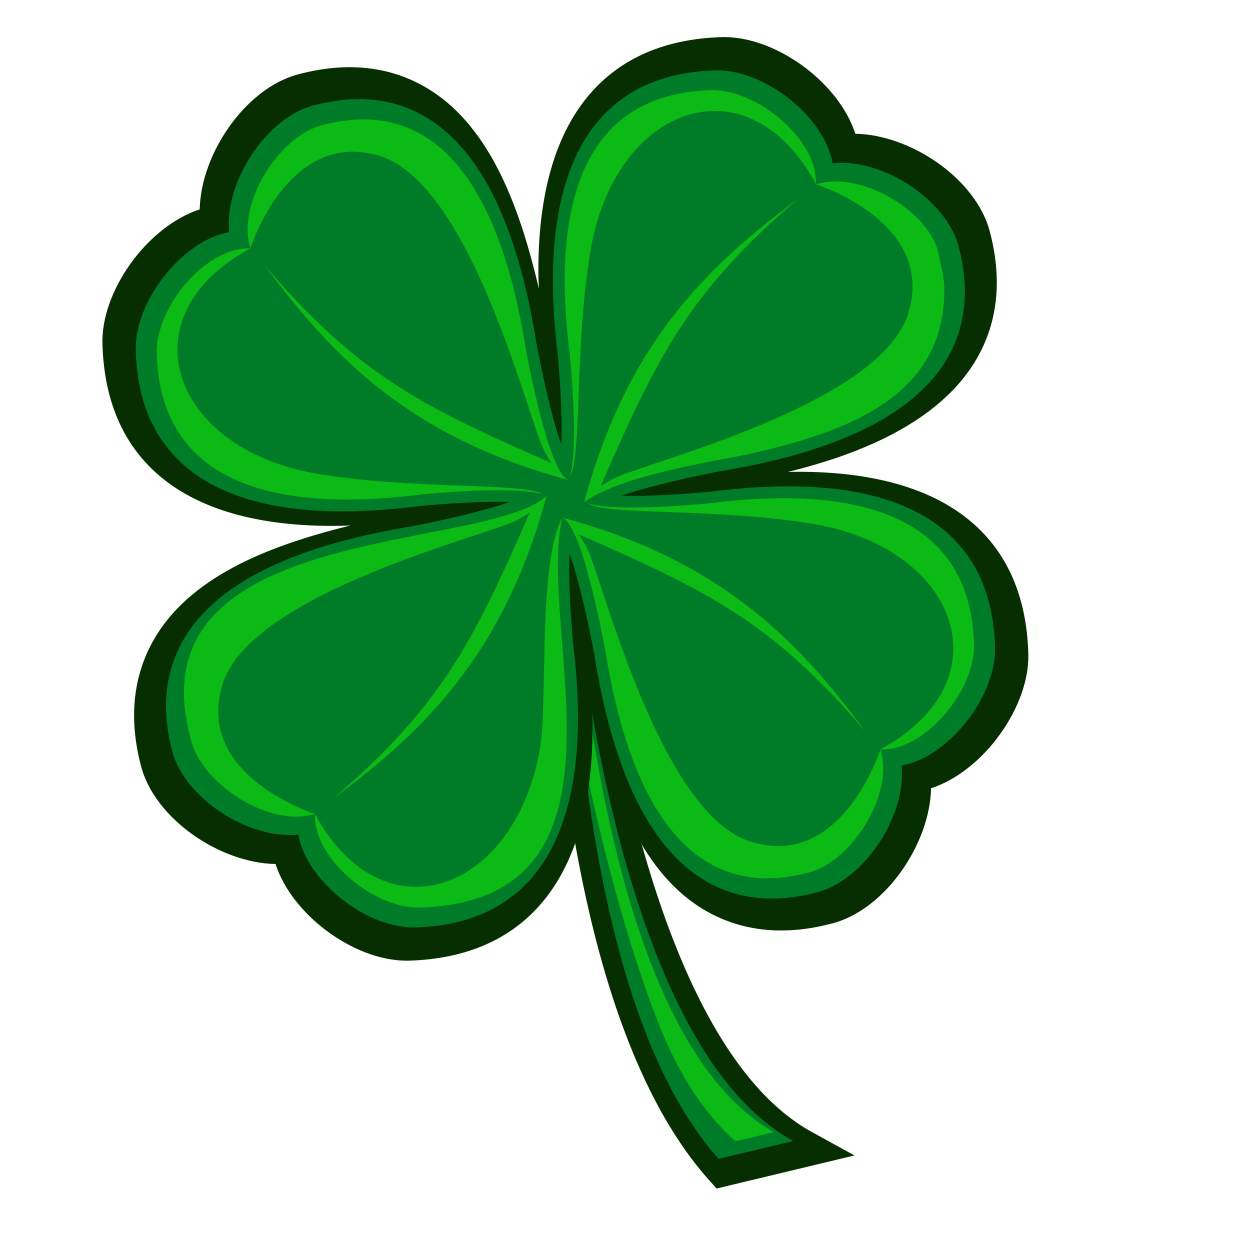 New illustration wanted for RunGoddess - Four Leaf Clover Temporary Tattoo